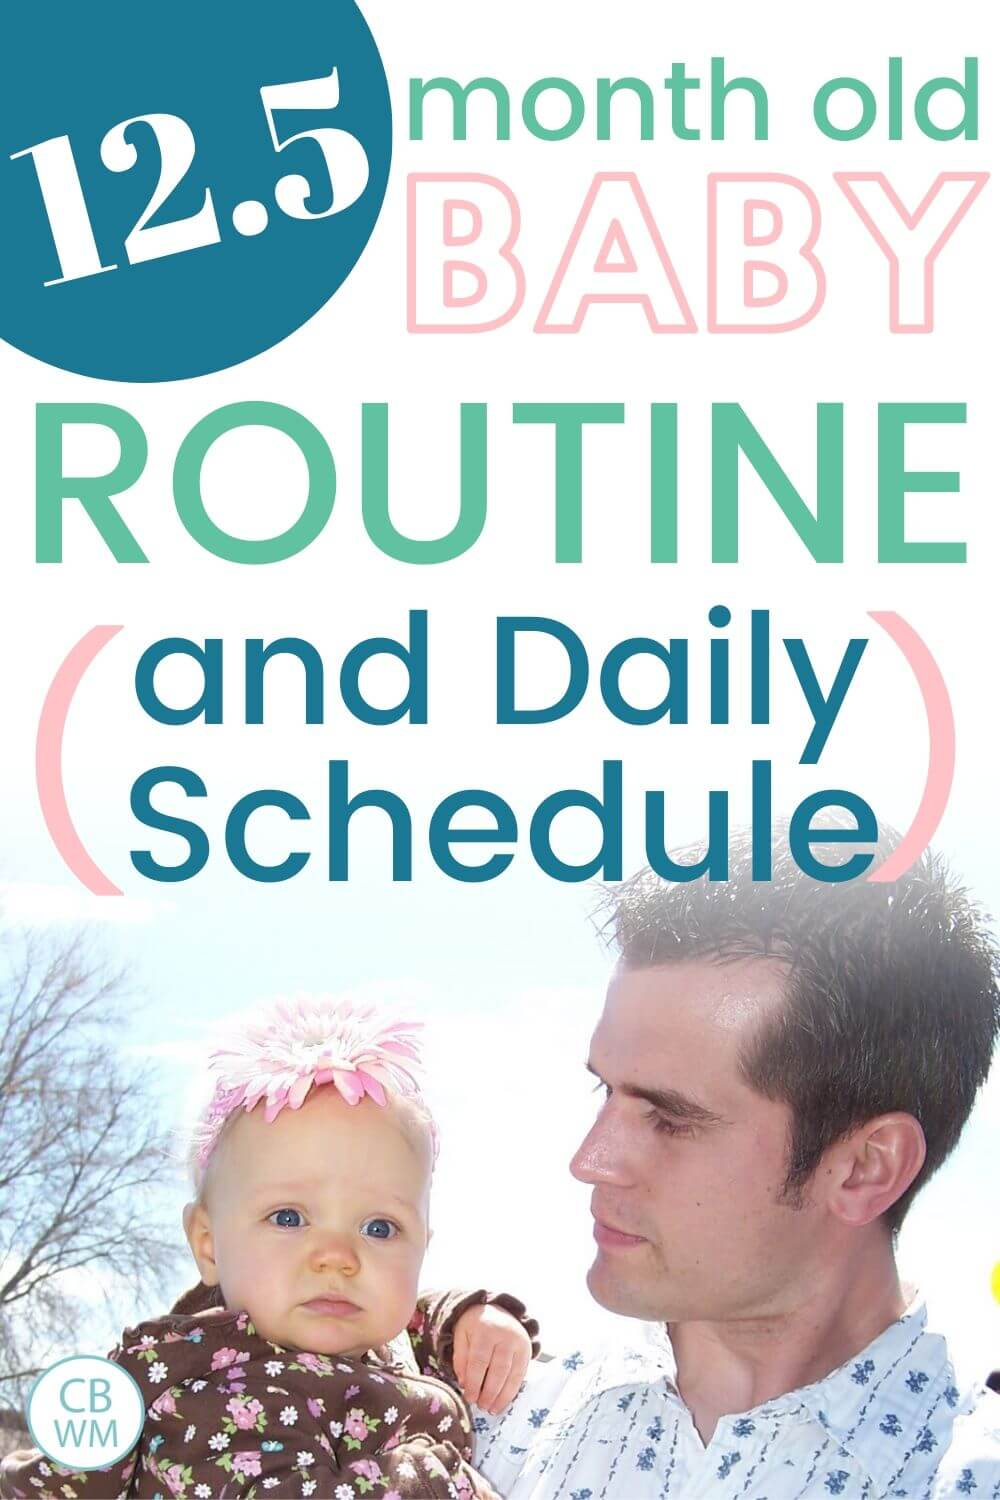 12.5 month old schedule and routine pinnable image